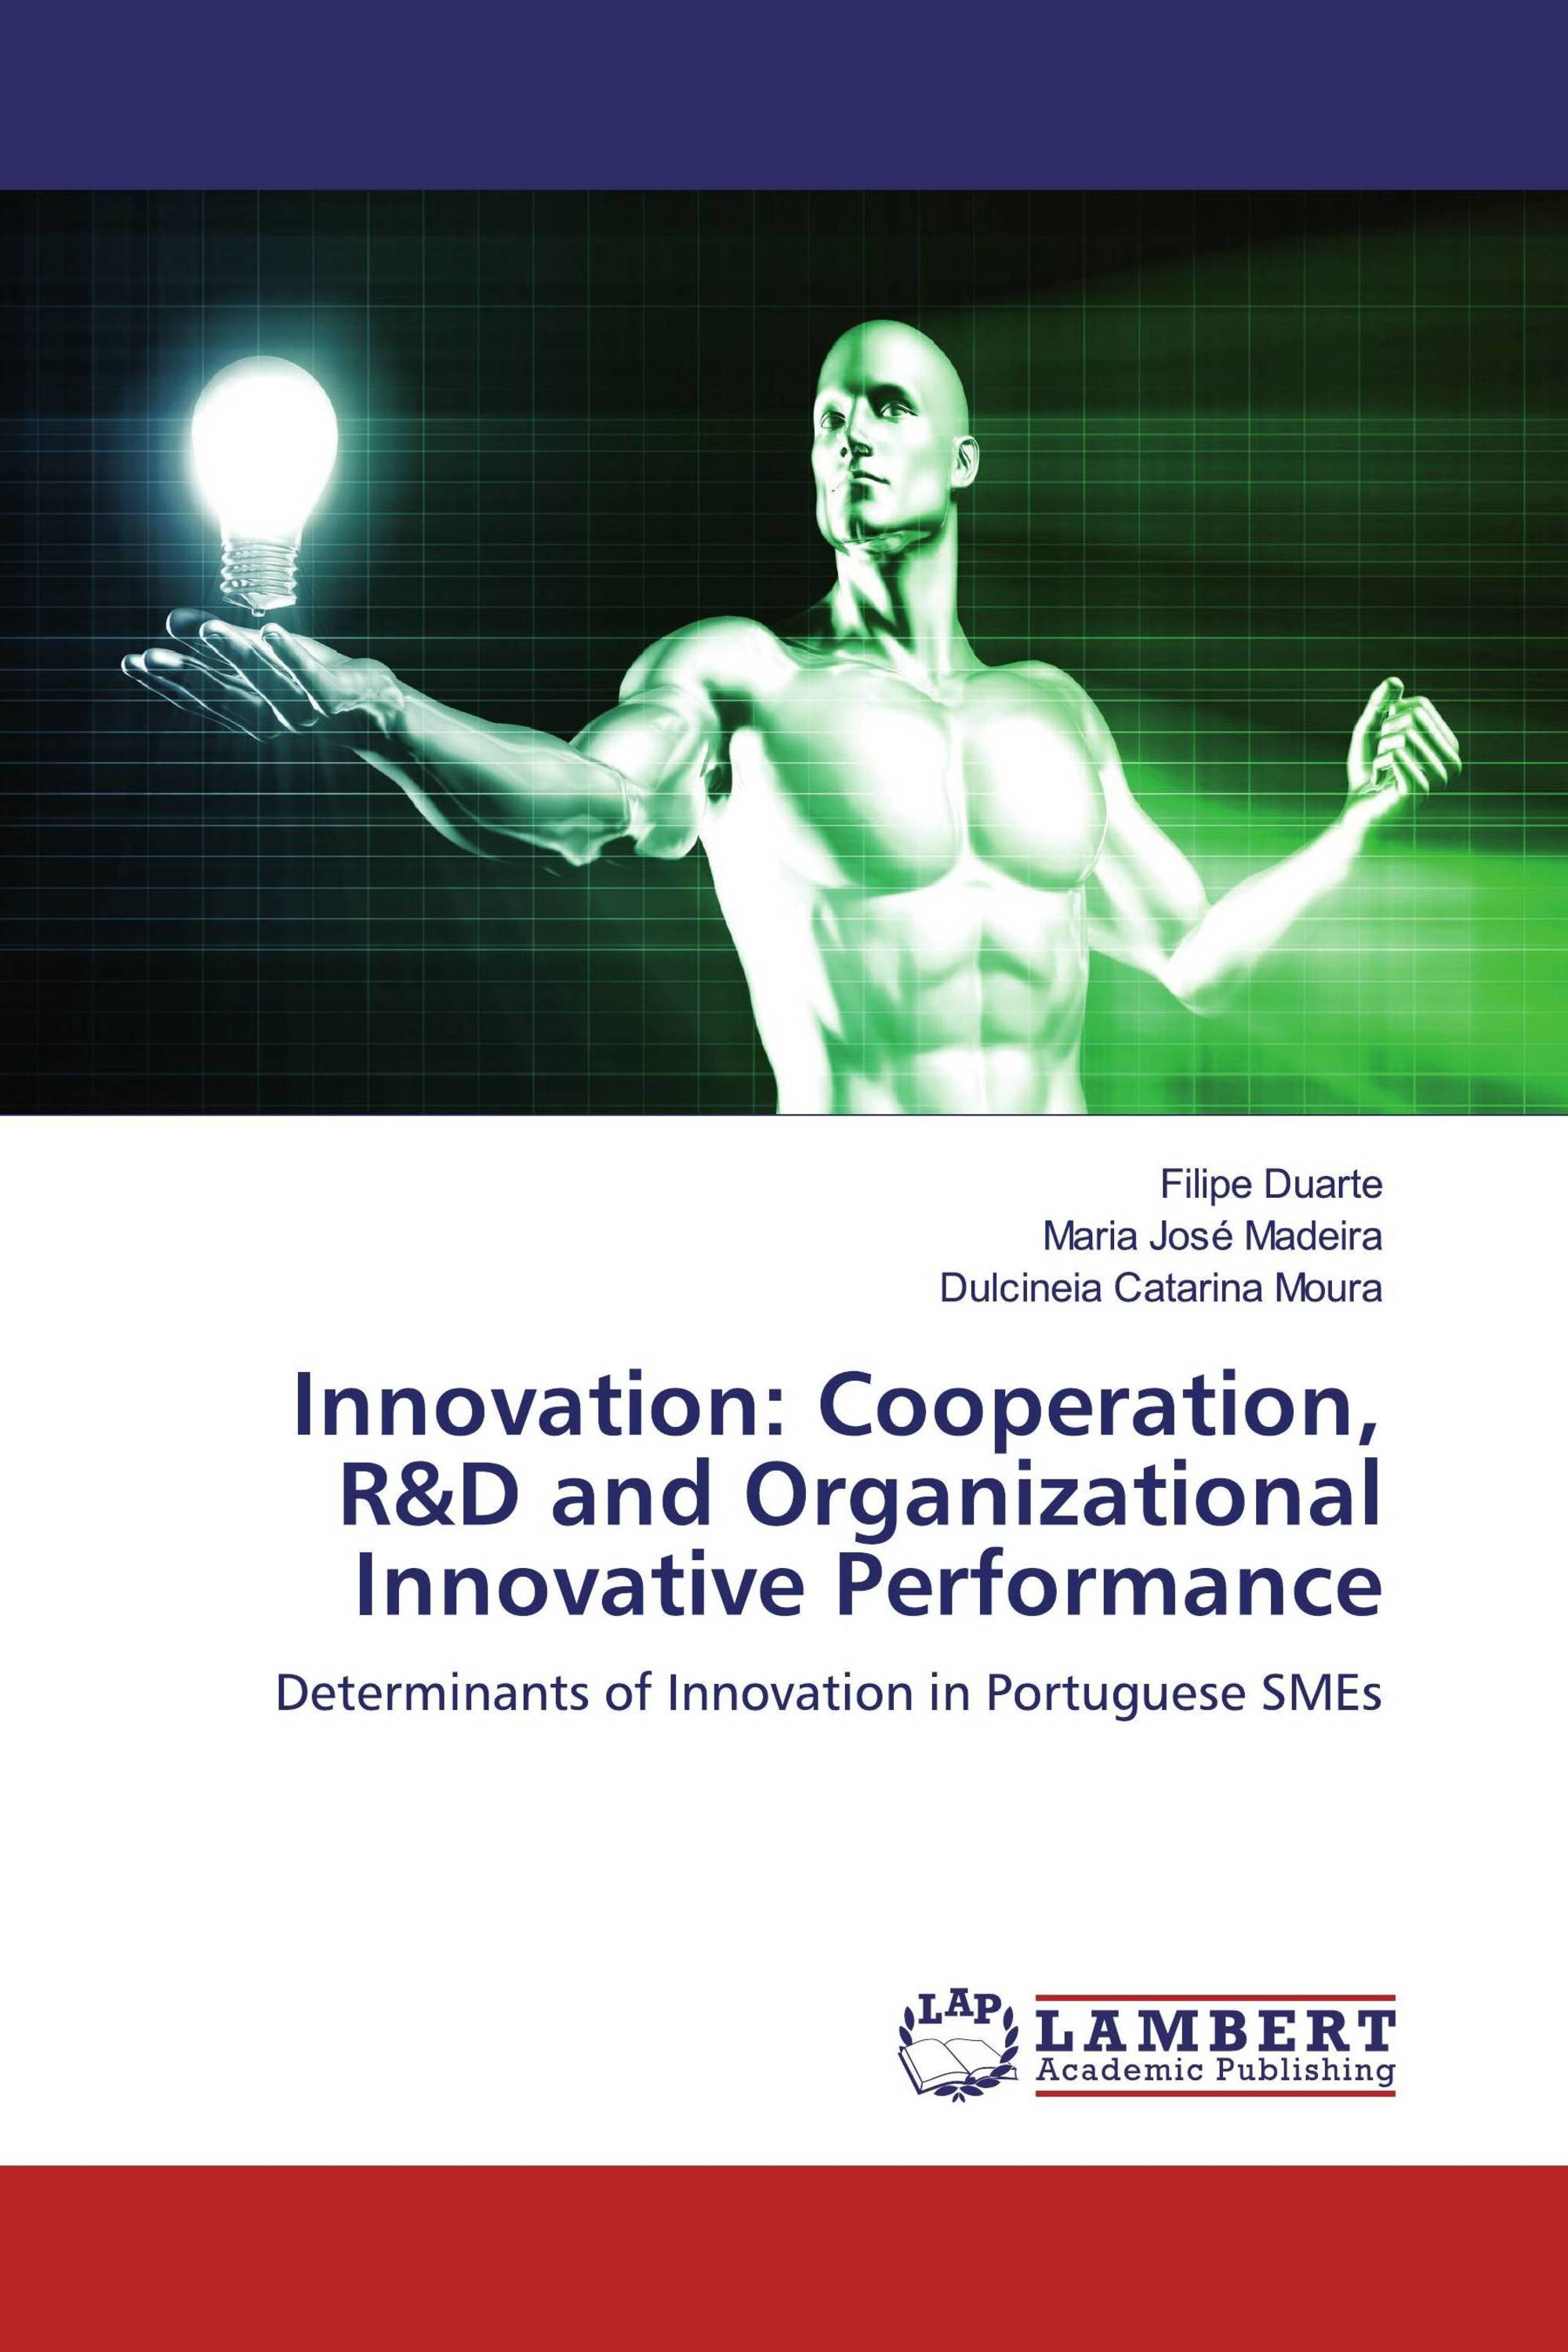 Innovation: Cooperation, R&D and Organizational Innovative Performance